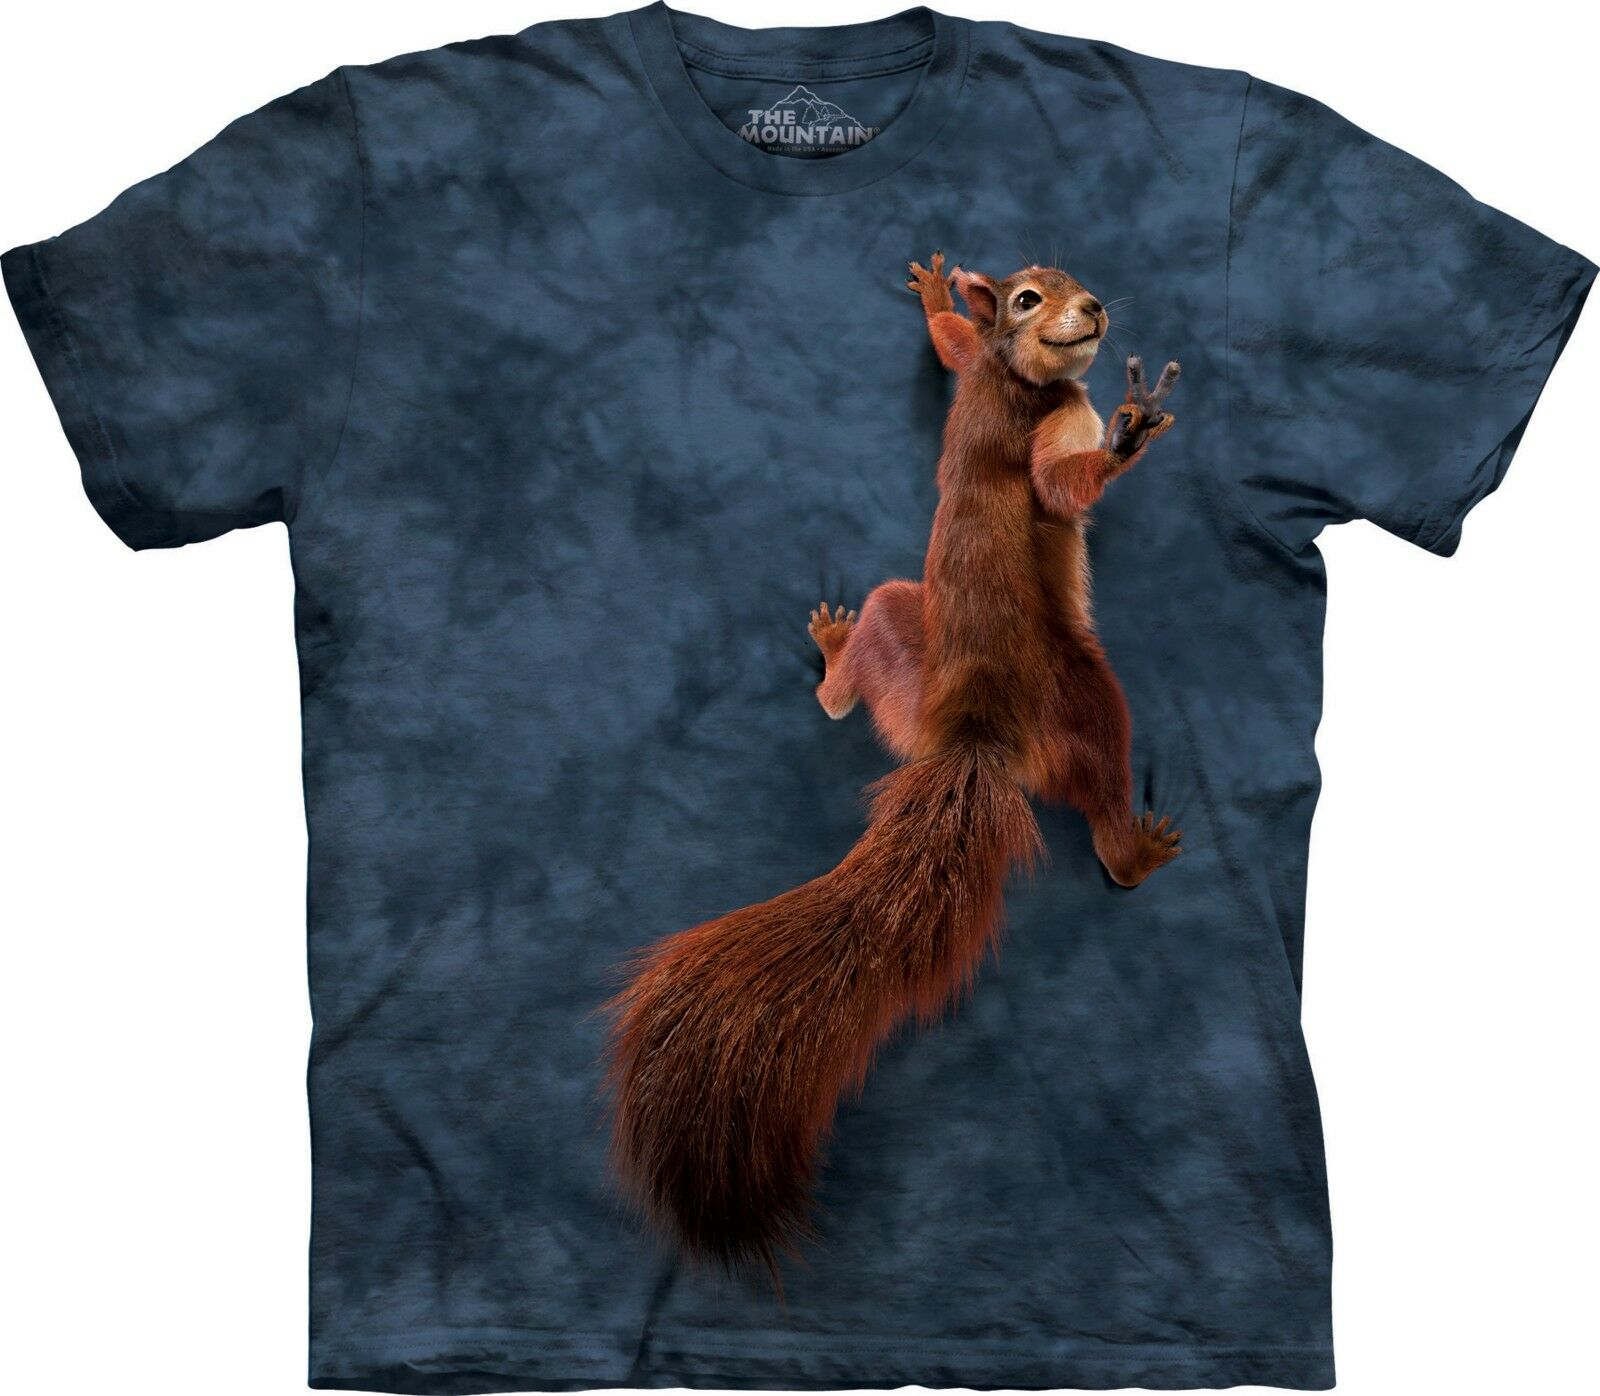 Peace Squirrel T Shirt Adult Unisex The Mountain